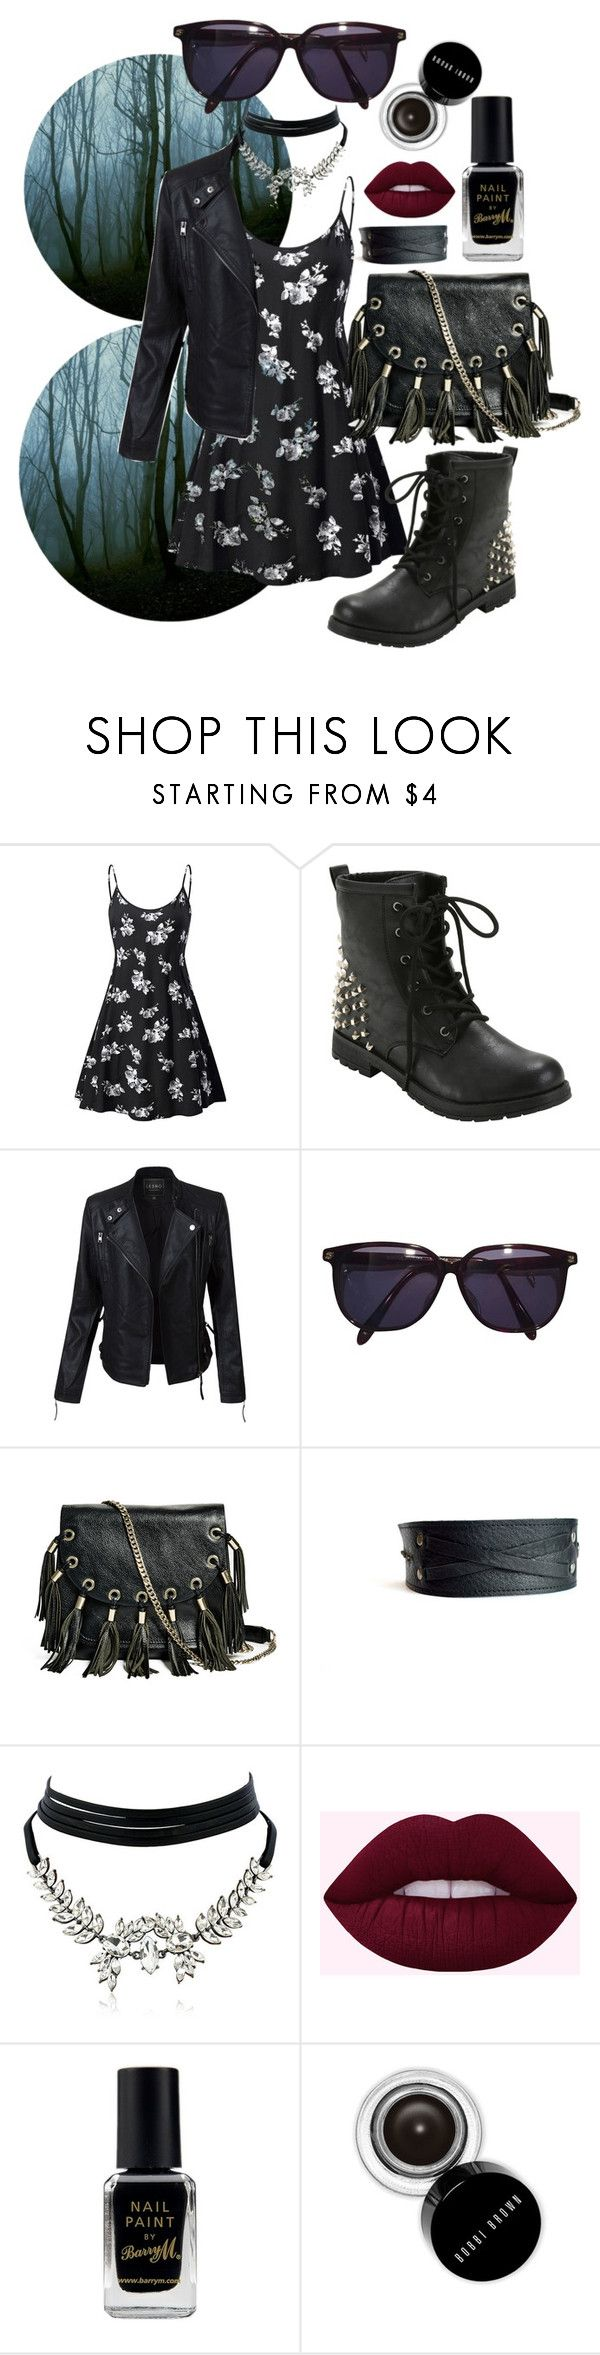 """""""Untitled #43"""" by nymeria666 ❤ liked on Polyvore featuring Hot Topic, LE3NO, Sonia Rykiel, GUESS by Marciano, WithChic, Barry M and Bobbi Brown Cosmetics"""